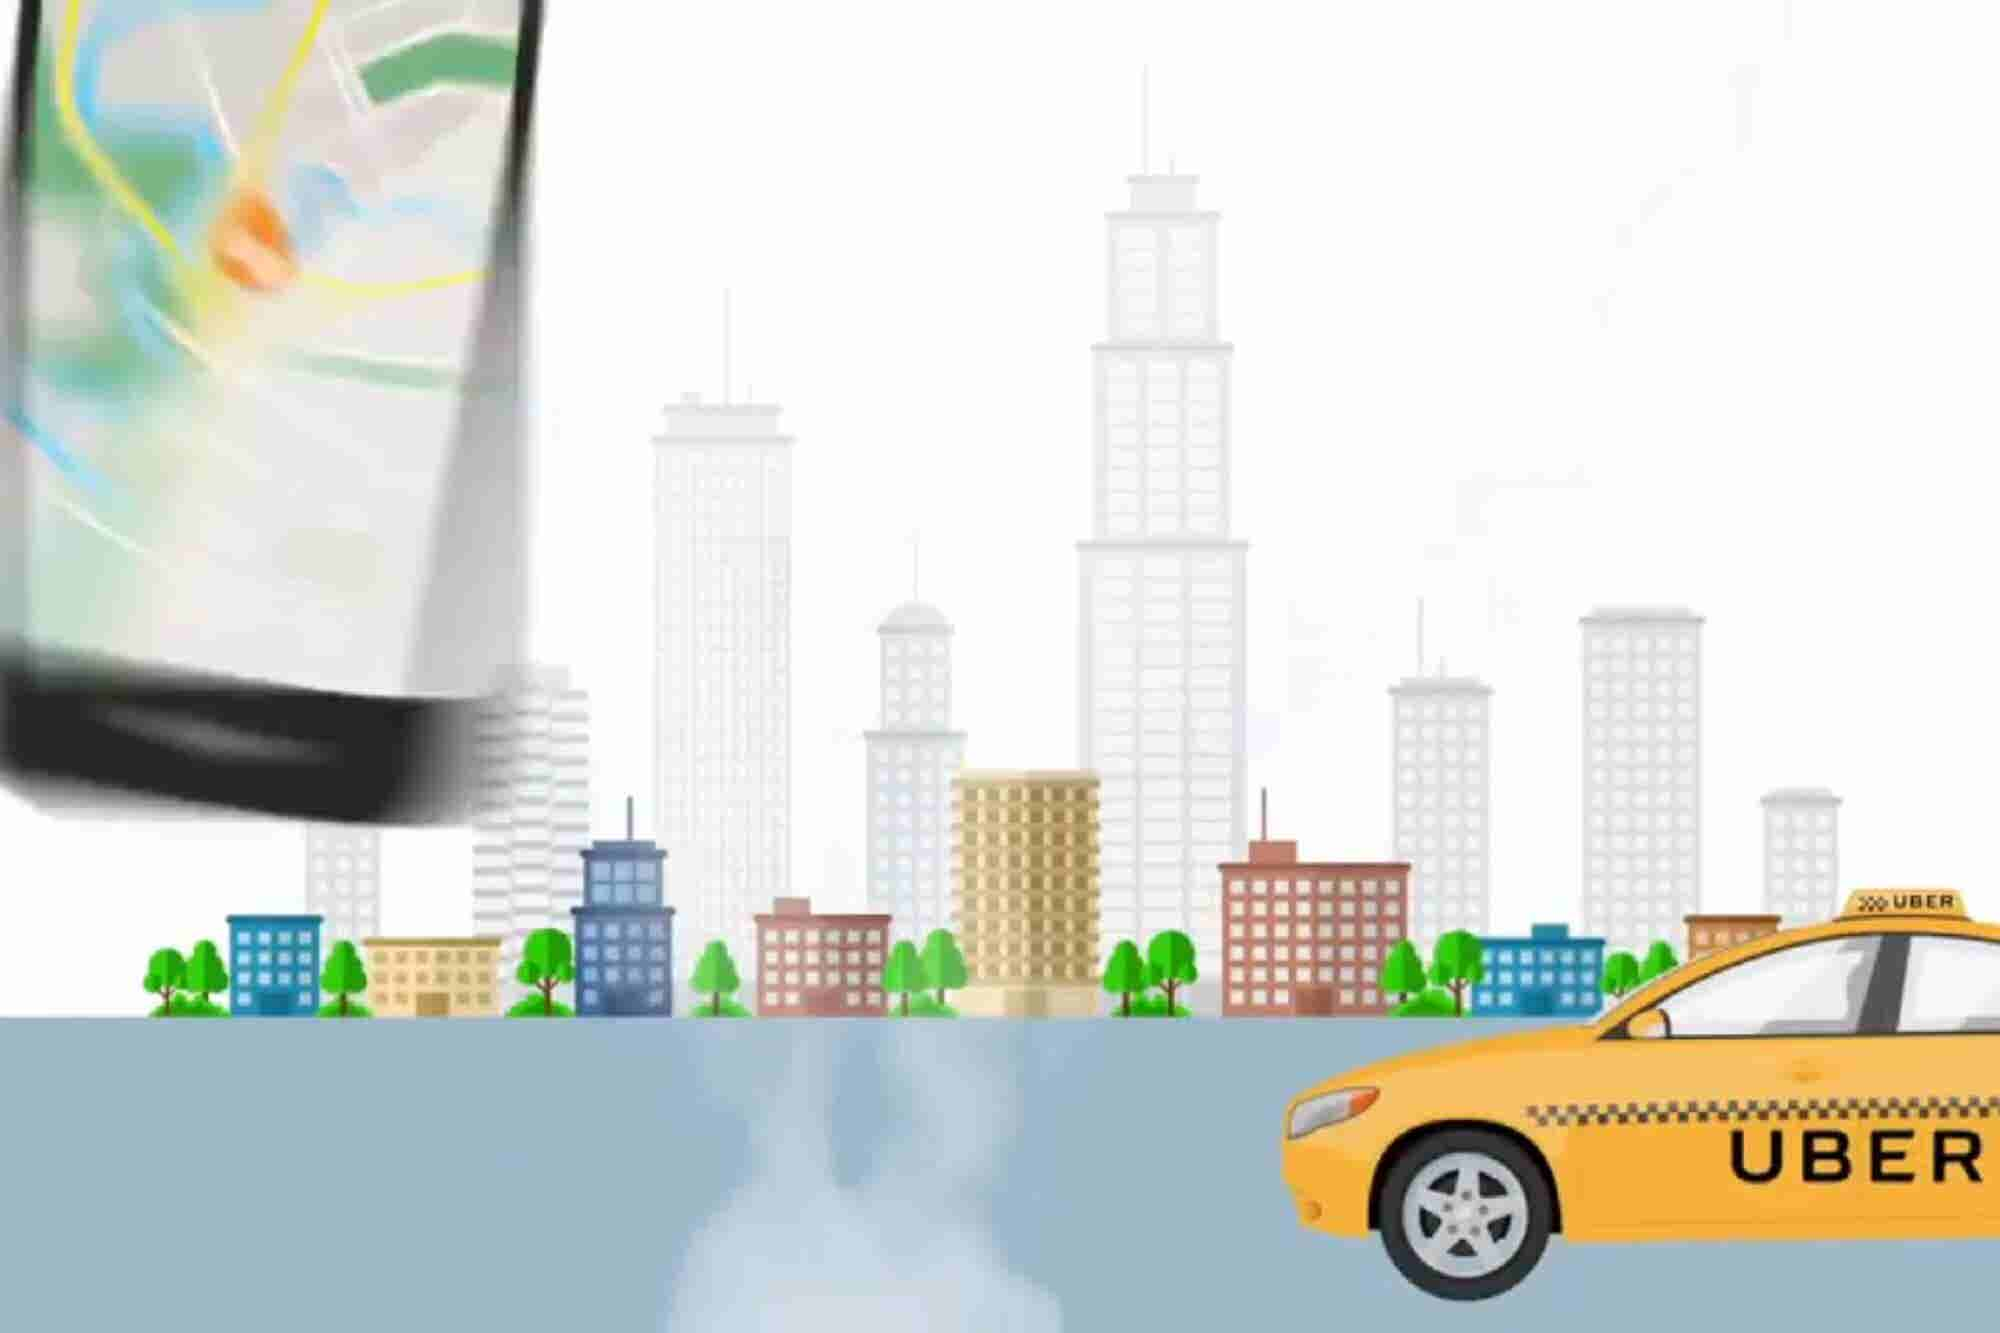 Uber Says No to Google Maps & Maruti Suzuki Makes Way for Cheaper E-vehicles: 4 Things to Know Today